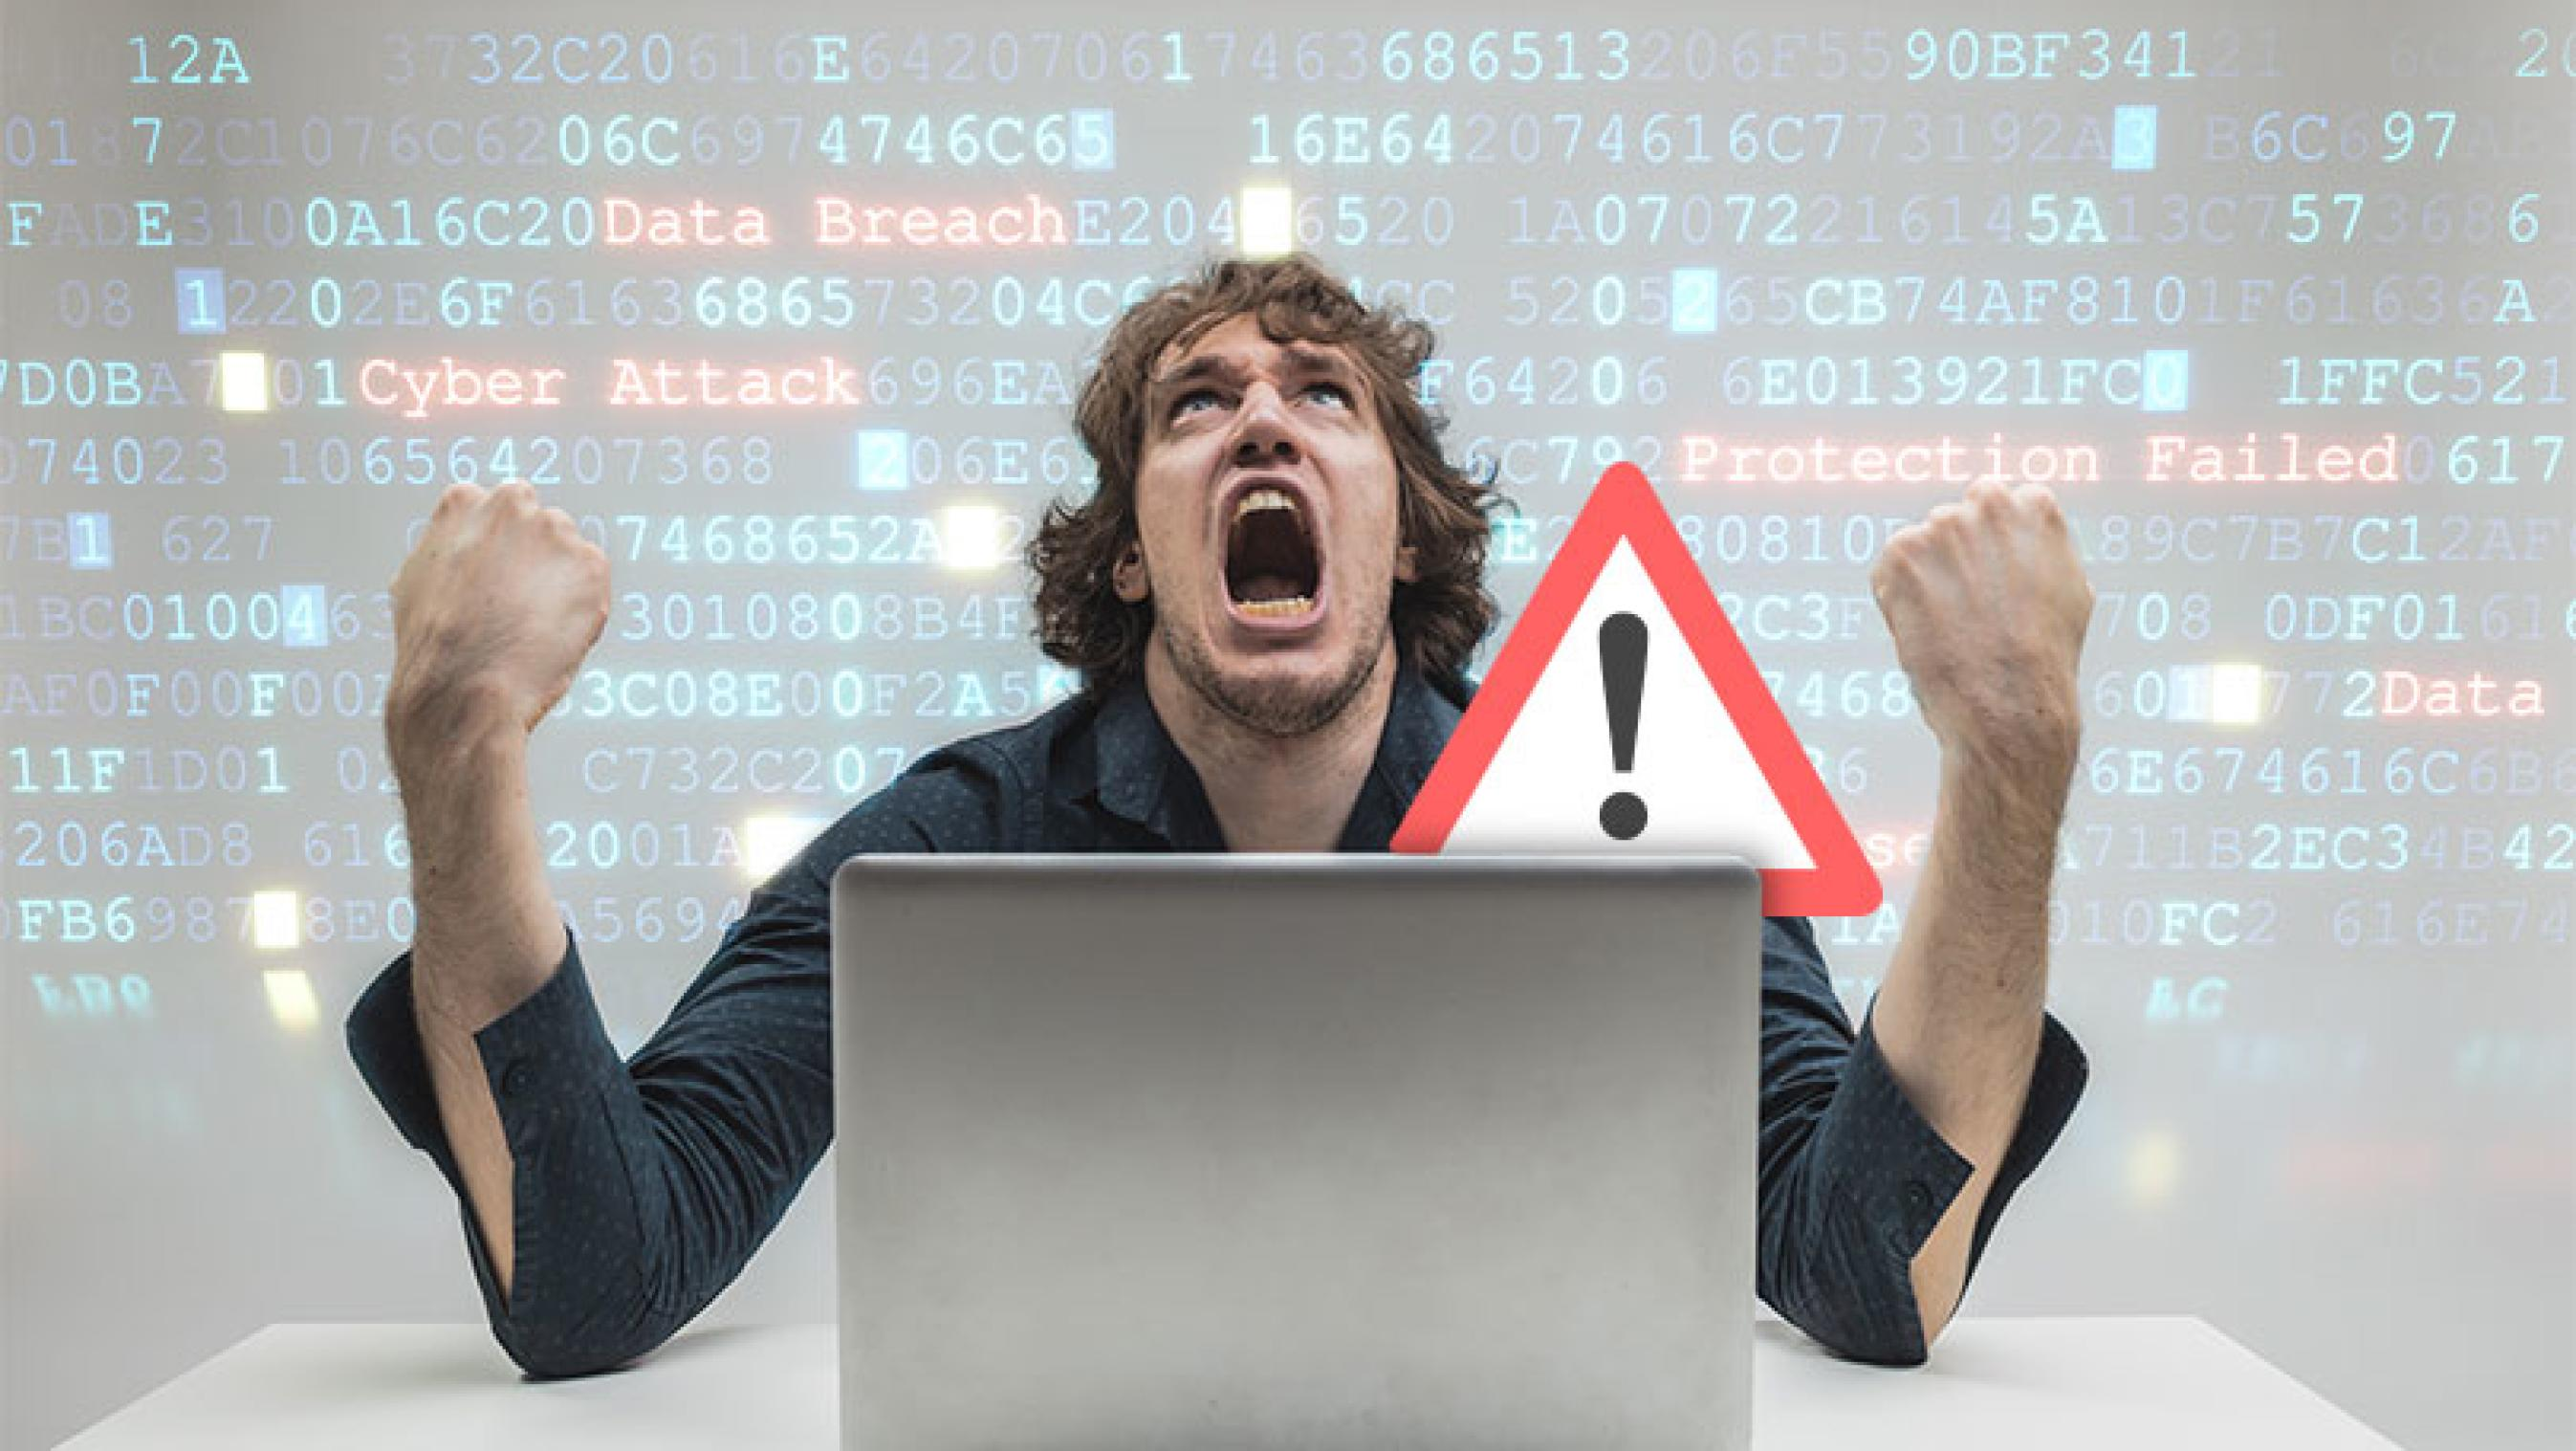 What to do if you site been hacked